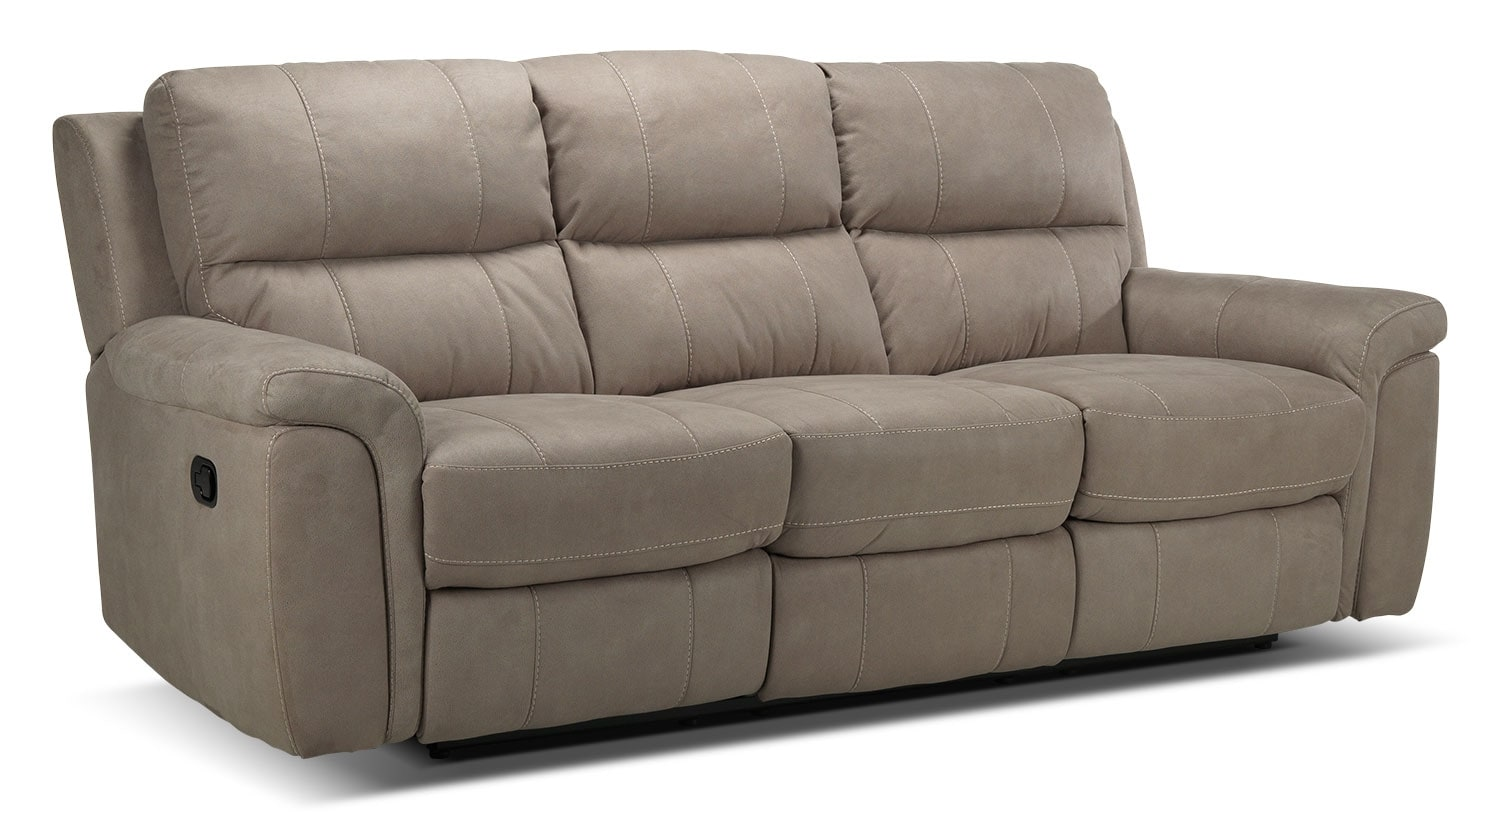 Roarke Reclining Sofa - Silver Grey